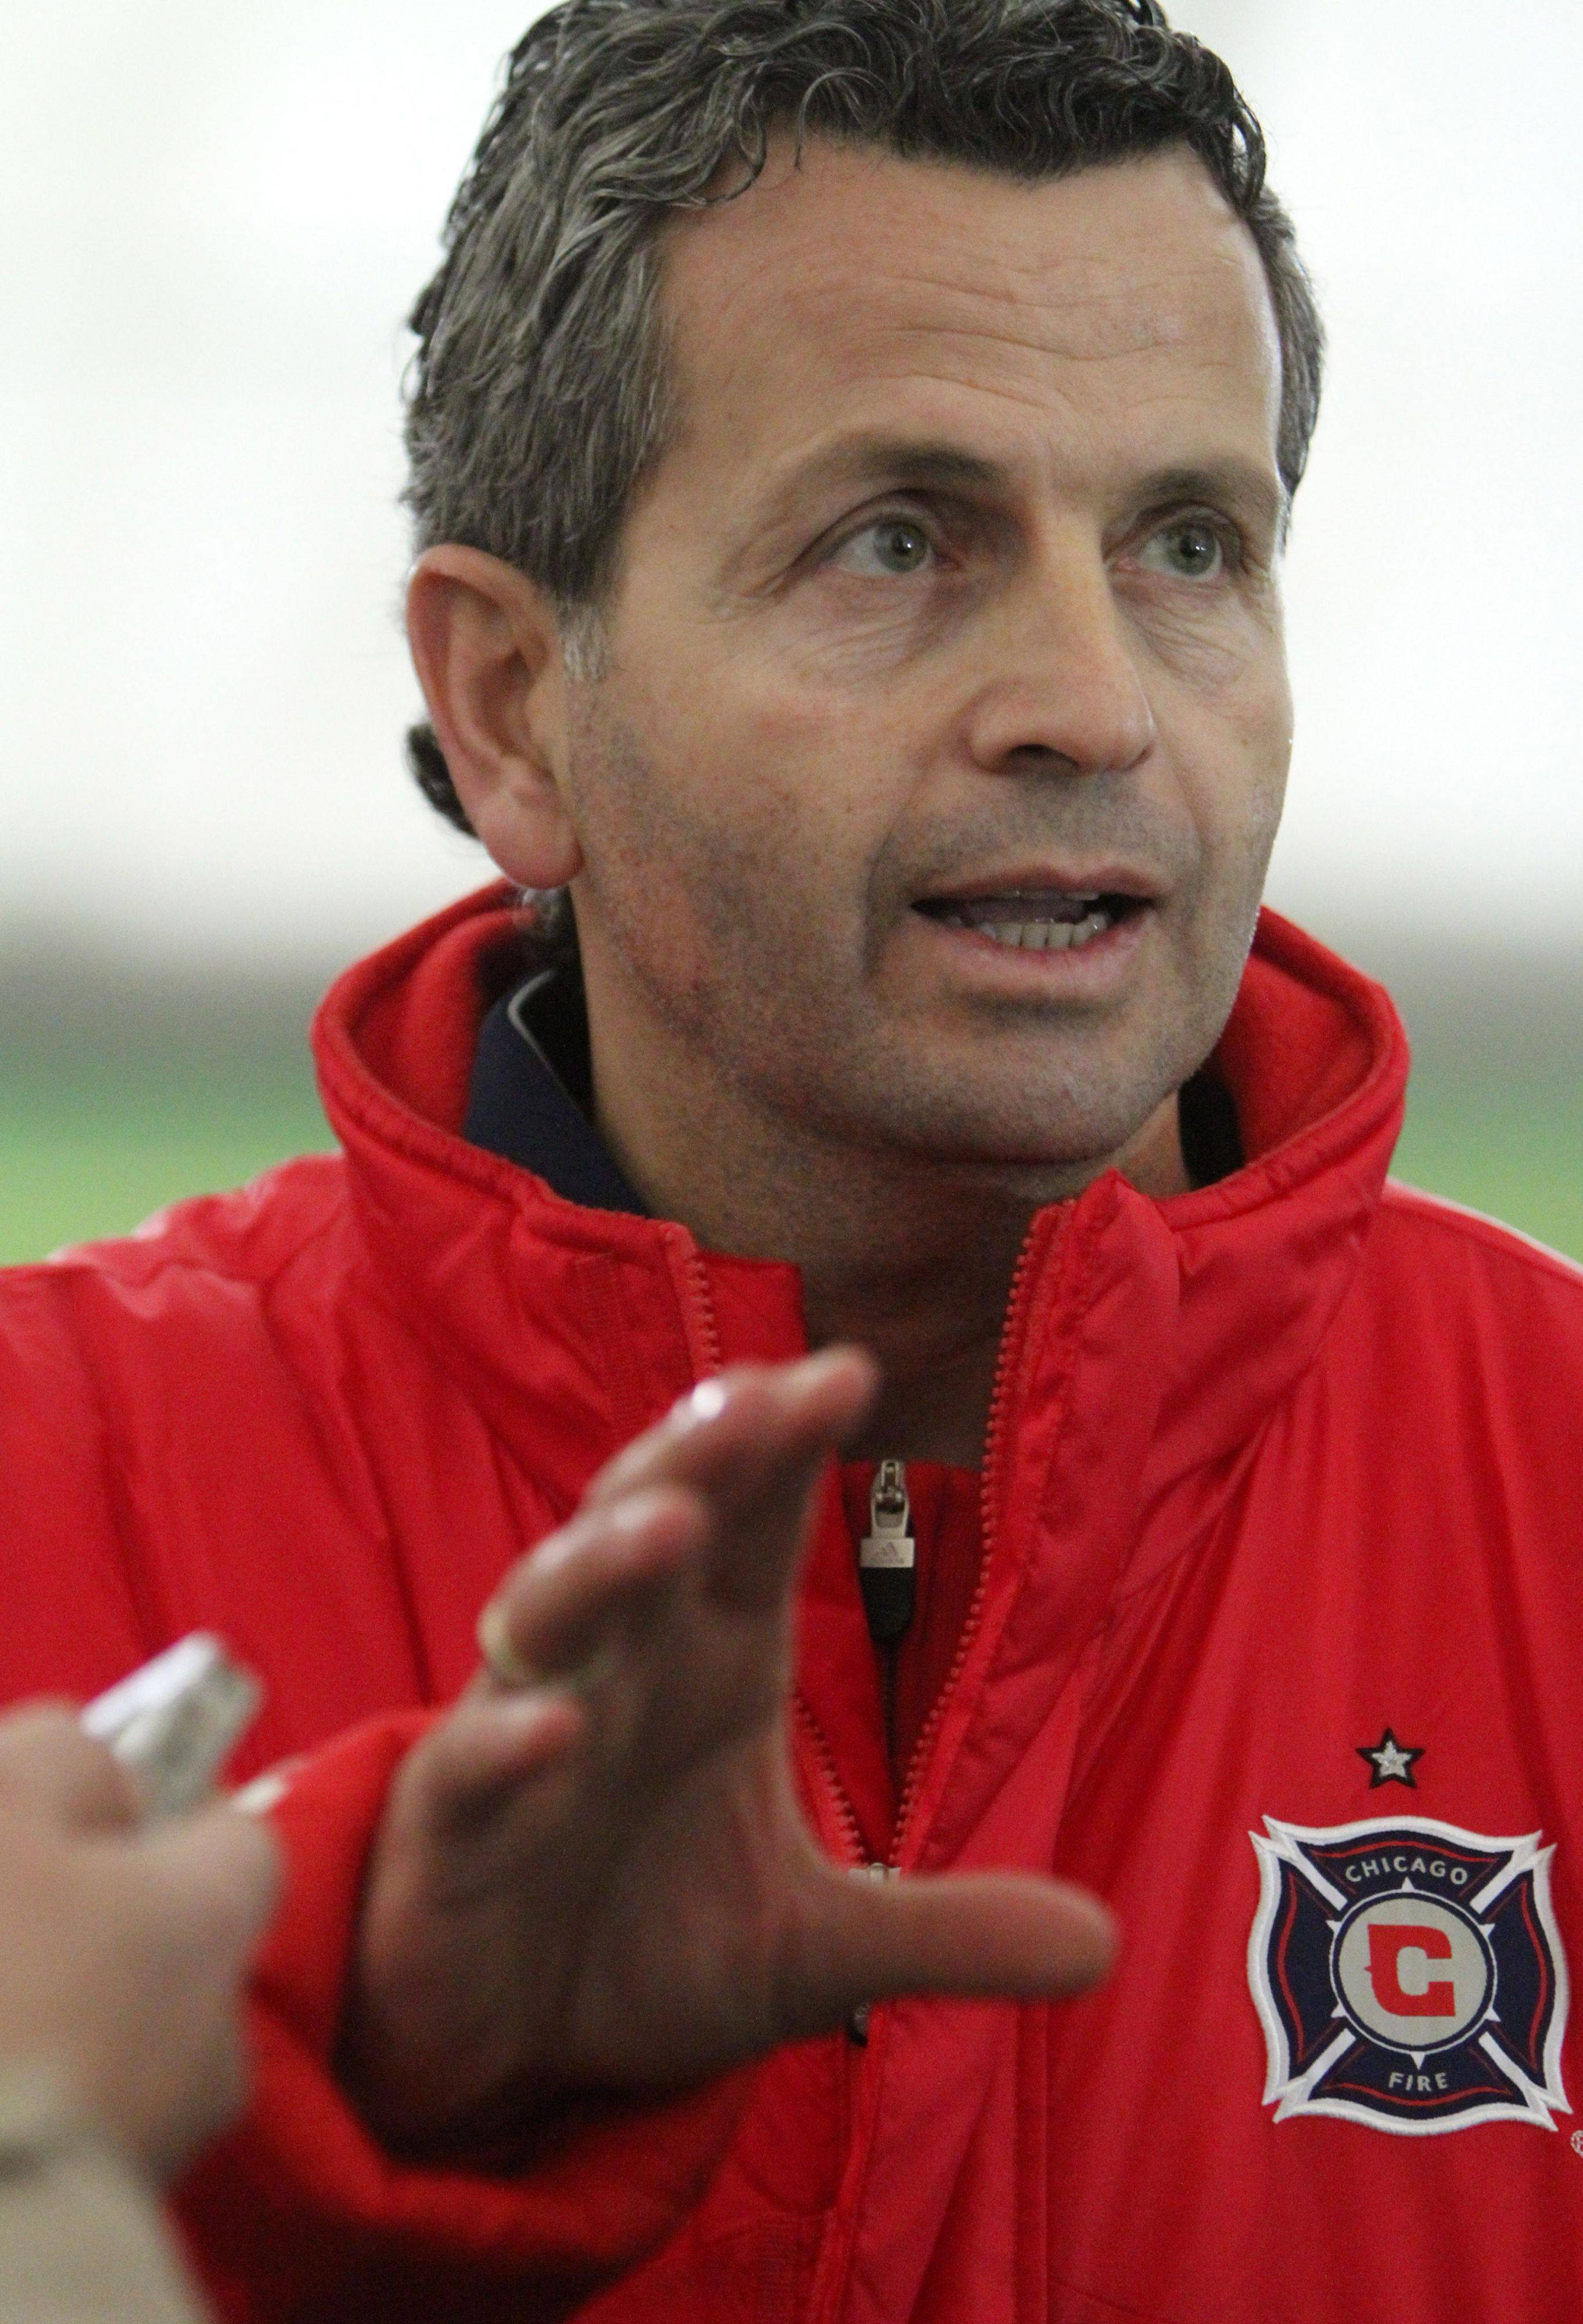 Chicago Fire technical director Frank Klopas will be the team's interim coach, following this weekend's firing of Carlos de los Cobos.